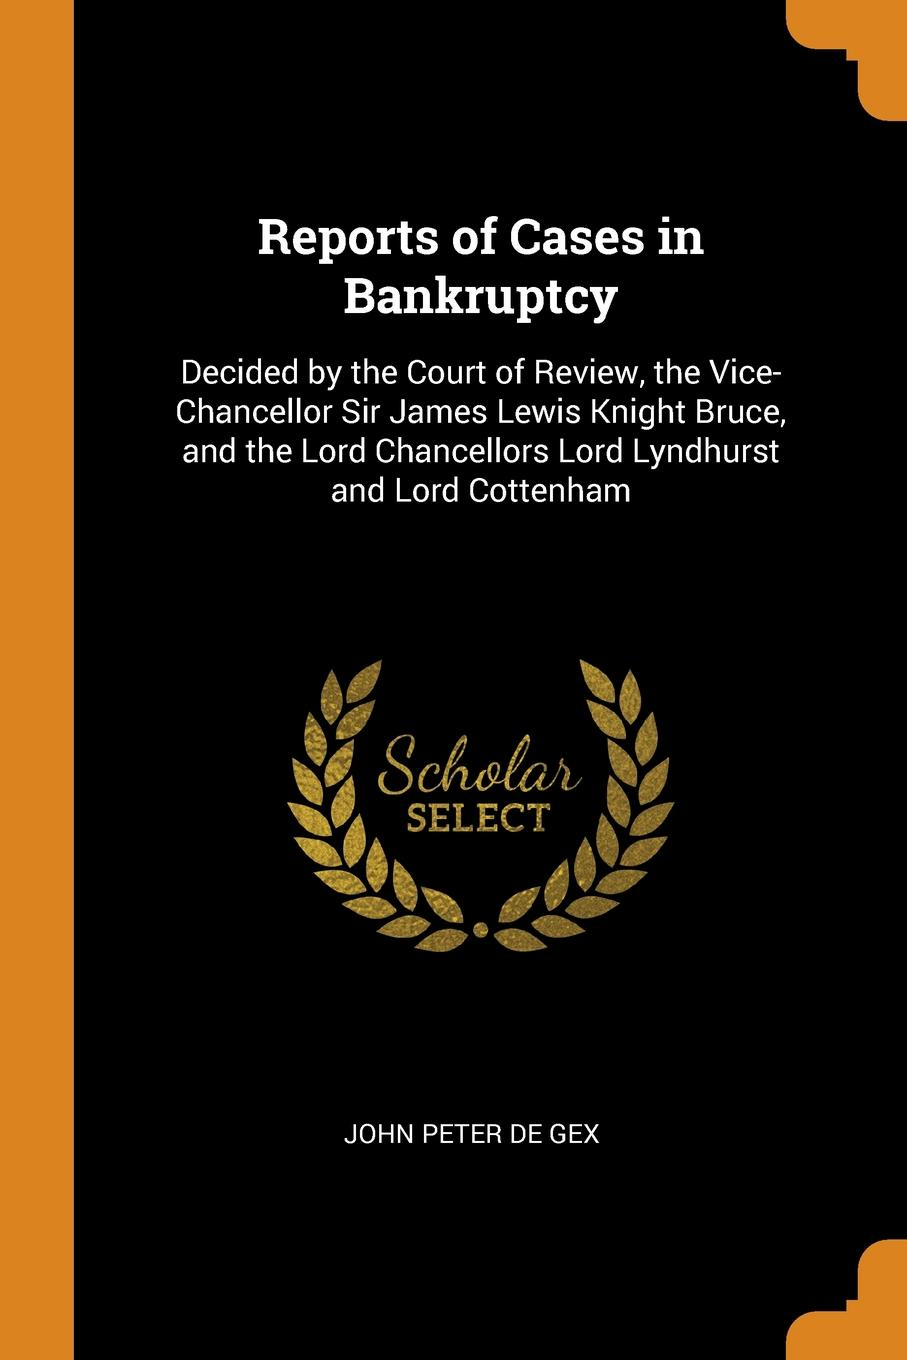 Reports of Cases in Bankruptcy. Decided by the Court of Review, the Vice-Chancellor Sir James Lewis Knight Bruce, and the Lord Chancellors Lord Lyndhurst and Lord Cottenham. John Peter De Gex